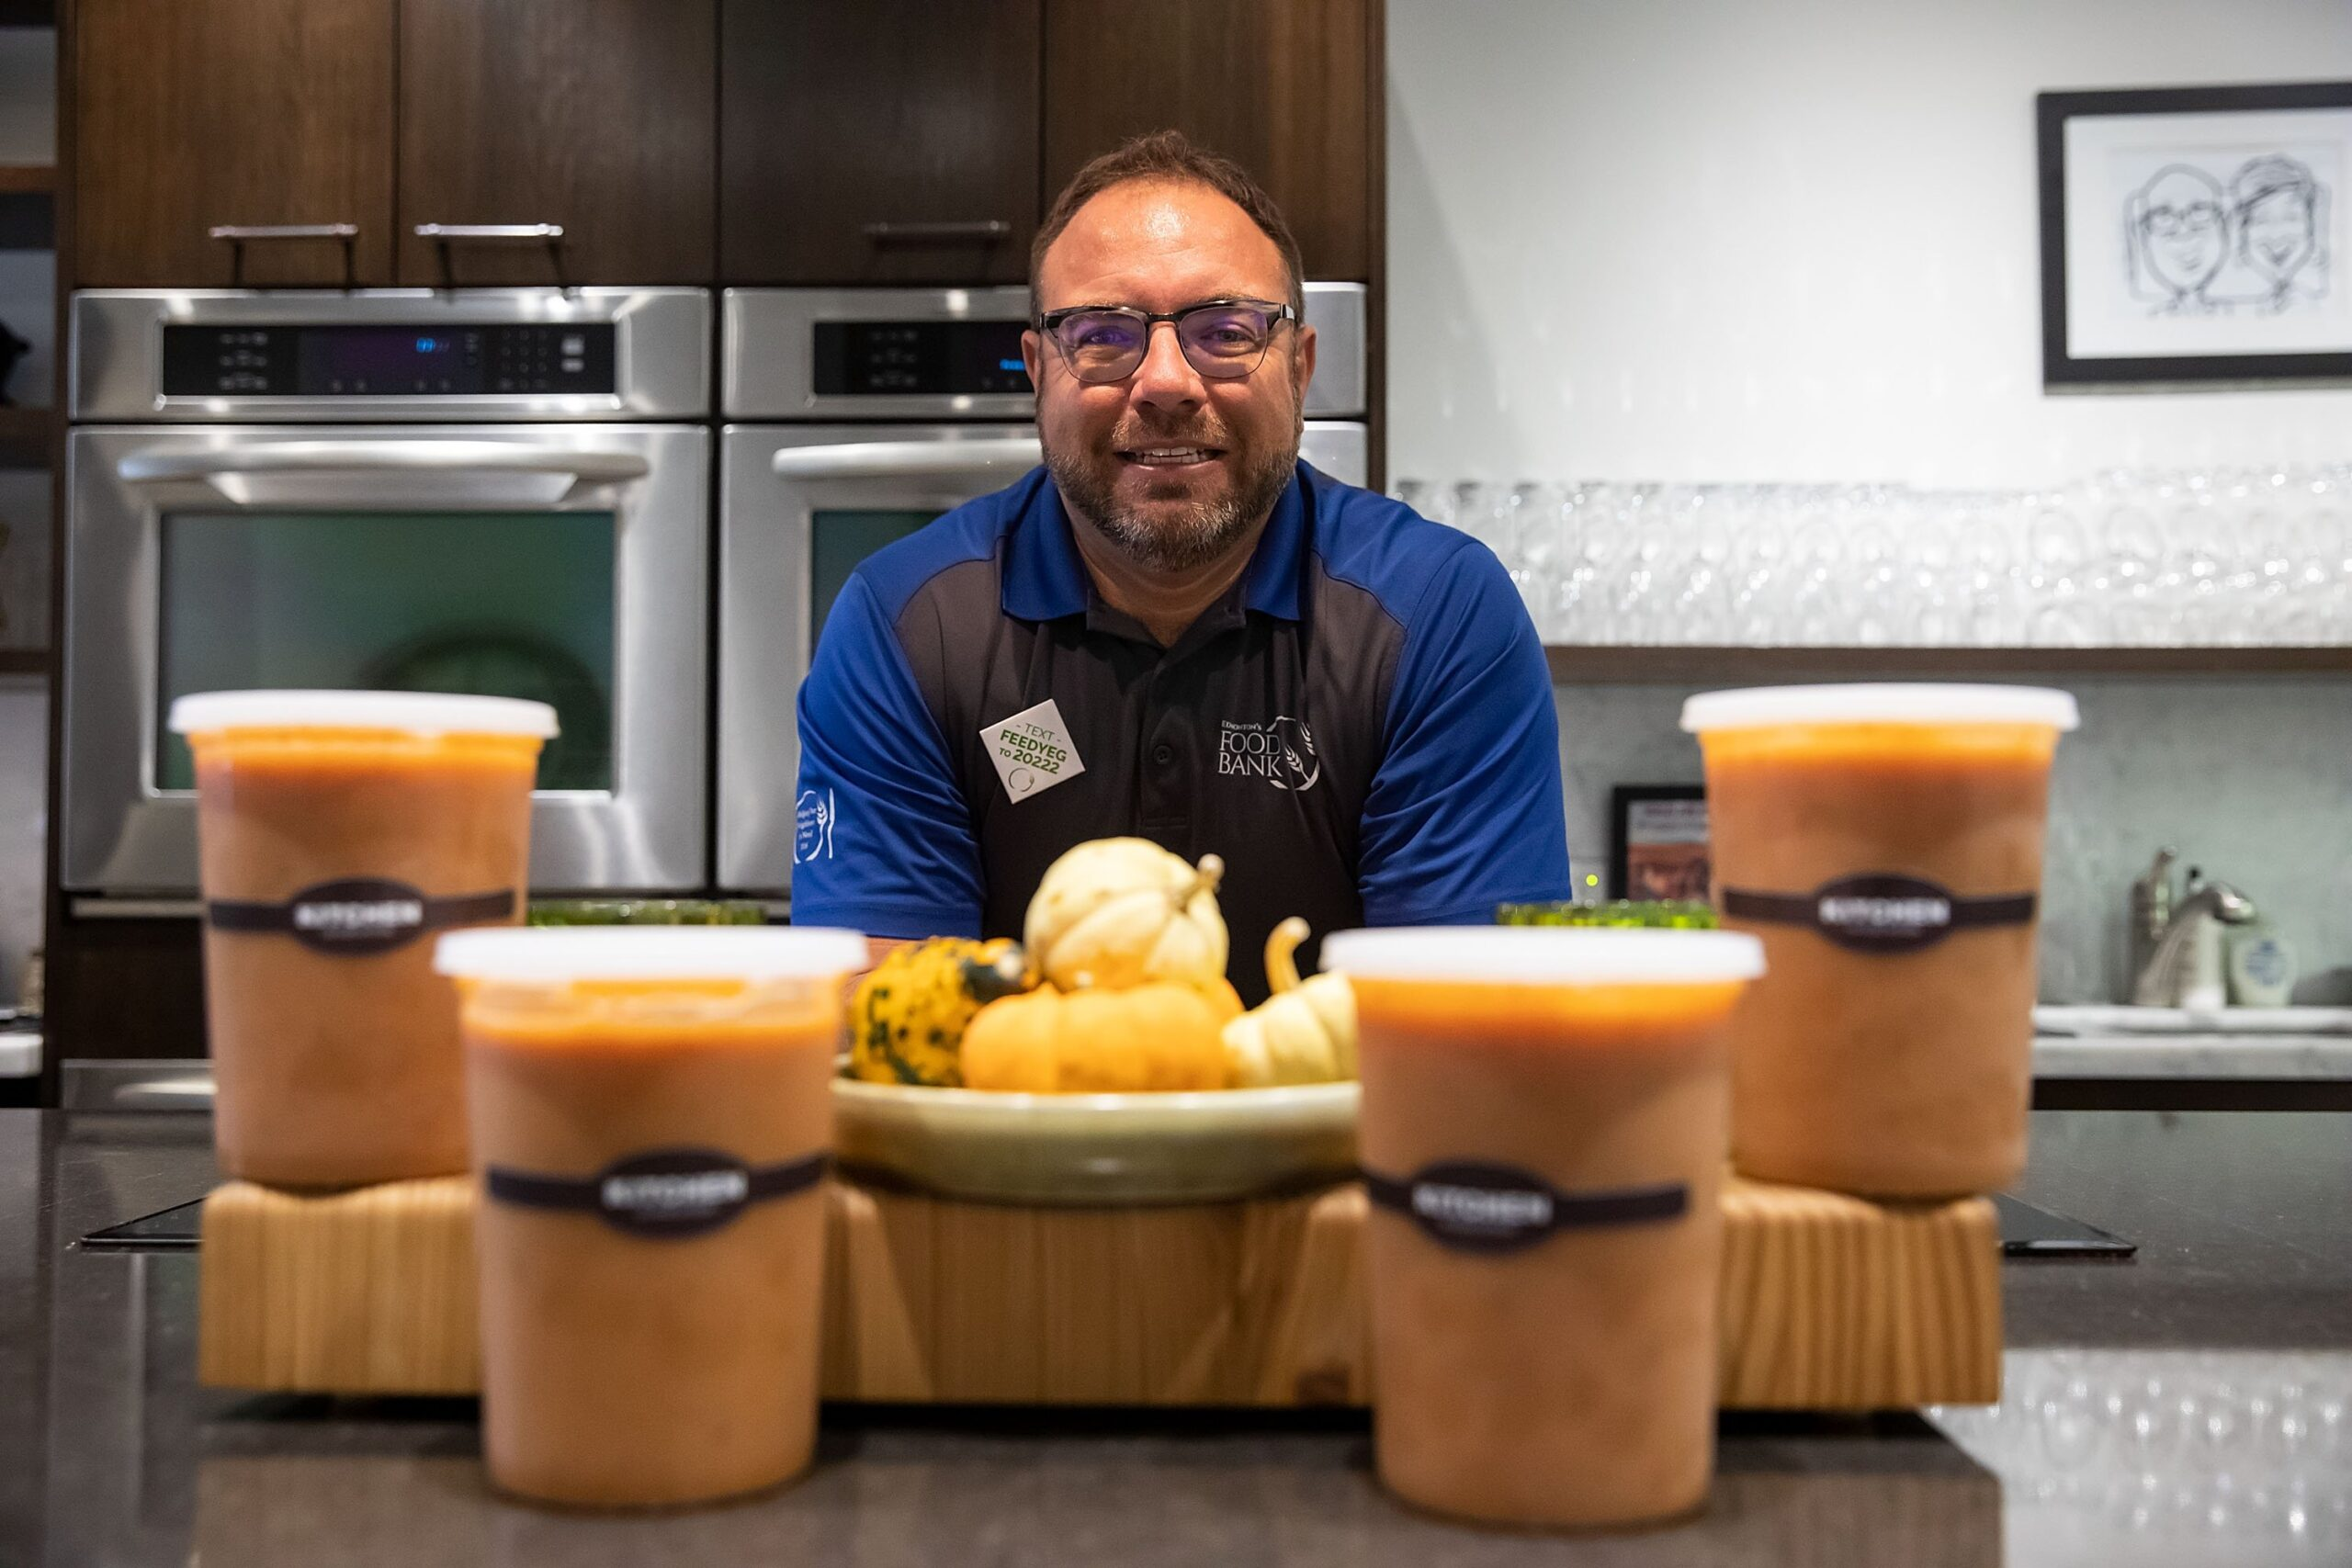 Edmonton Food Bank vice chair David Benjestorf is photographed with soups made from food harvested at his farm at Kitchen By Brad in Edmonton on Friday, Oct. 9, 2020. Benjestorf harvested 95,000 pounds of food this year at his farm, much of which was donated to the Food Bank.